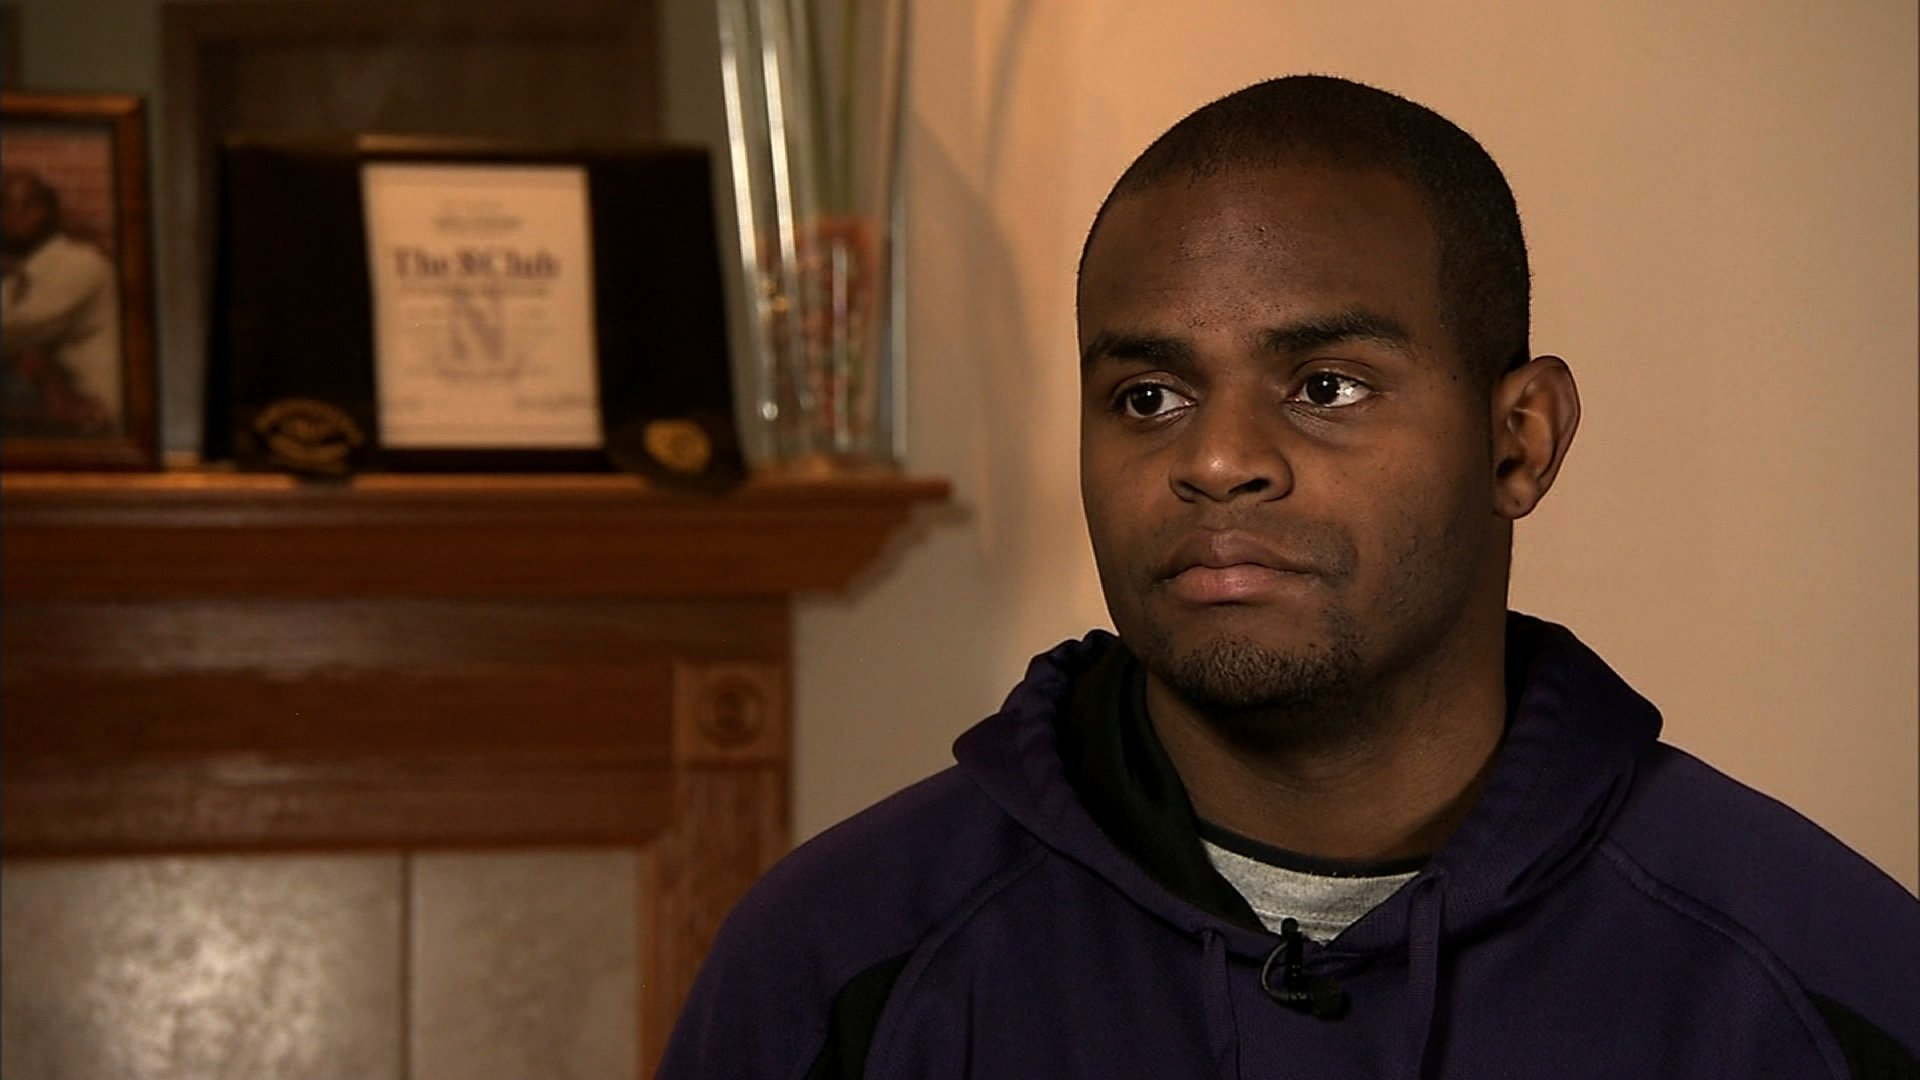 When former Northwestern Football player Jeff Yarbrough was recruited in 2003, he was among the top six fastest teens in the state of Illinois. But he fractured both legs during his college career and doctors had to put metal rods and screws in both shins. He's in so much pain, he can barely run. He's only 27 years old.